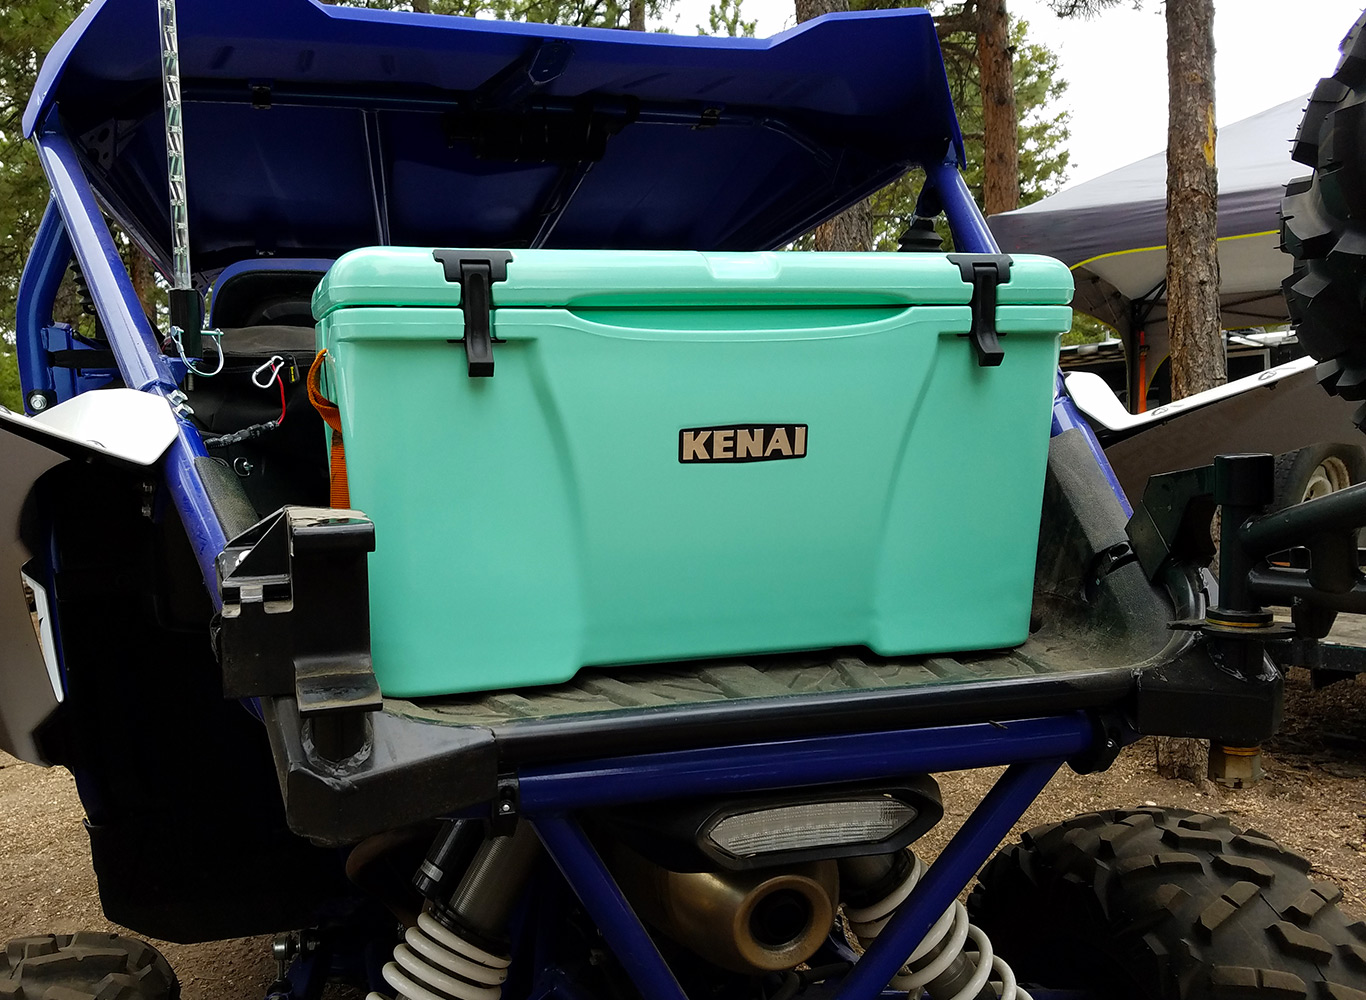 KENAI 45 by Grizzly Coolers